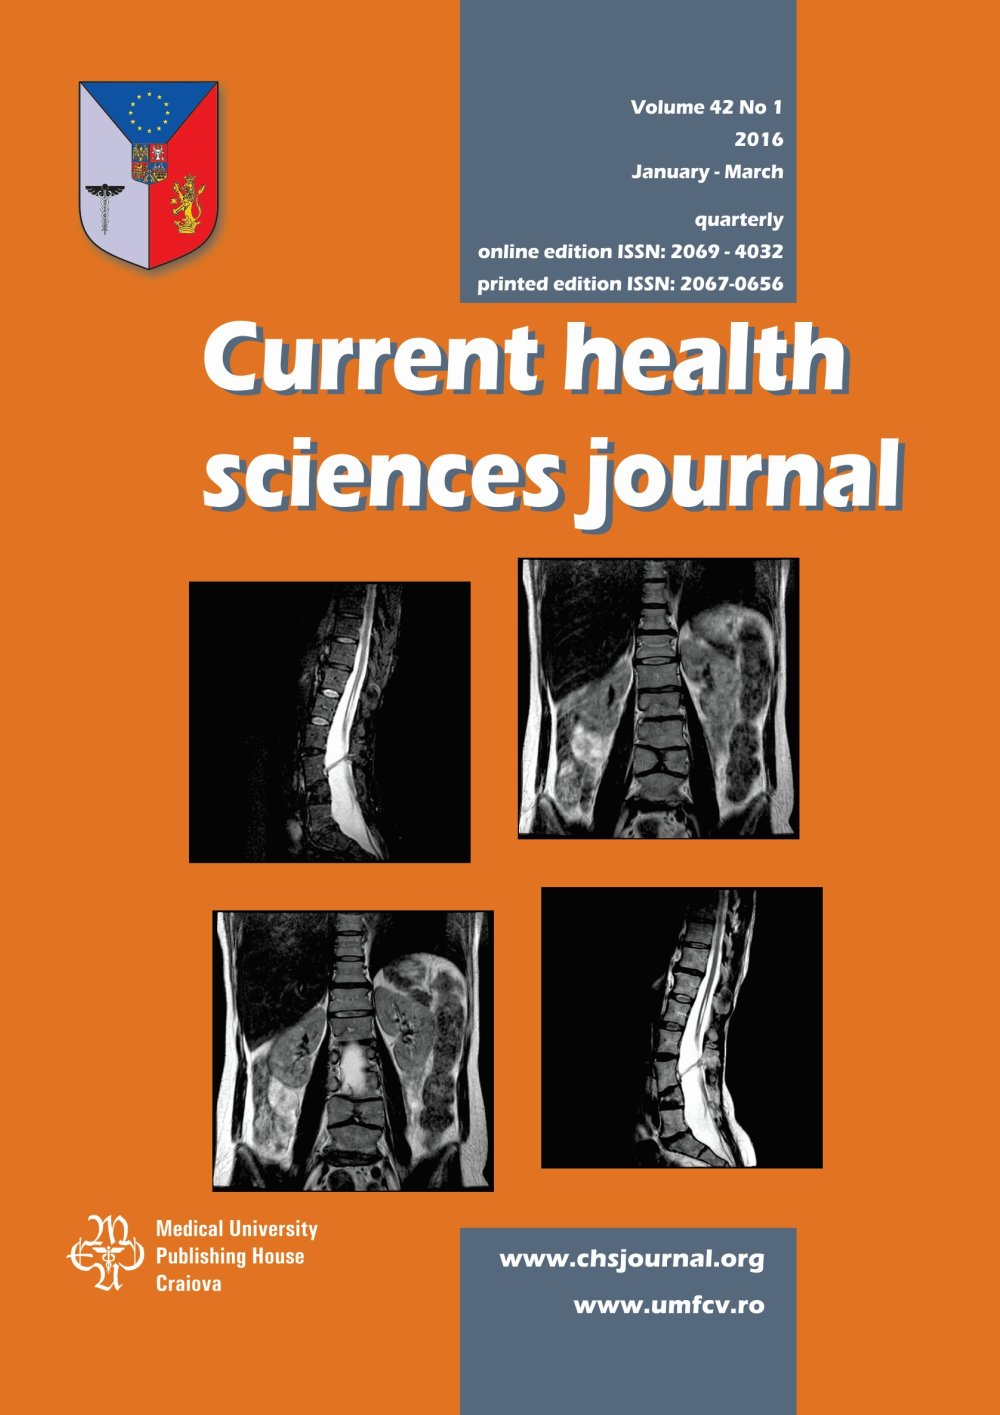 Current Health Sciences Journal, vol. 42 no. 1, 2016